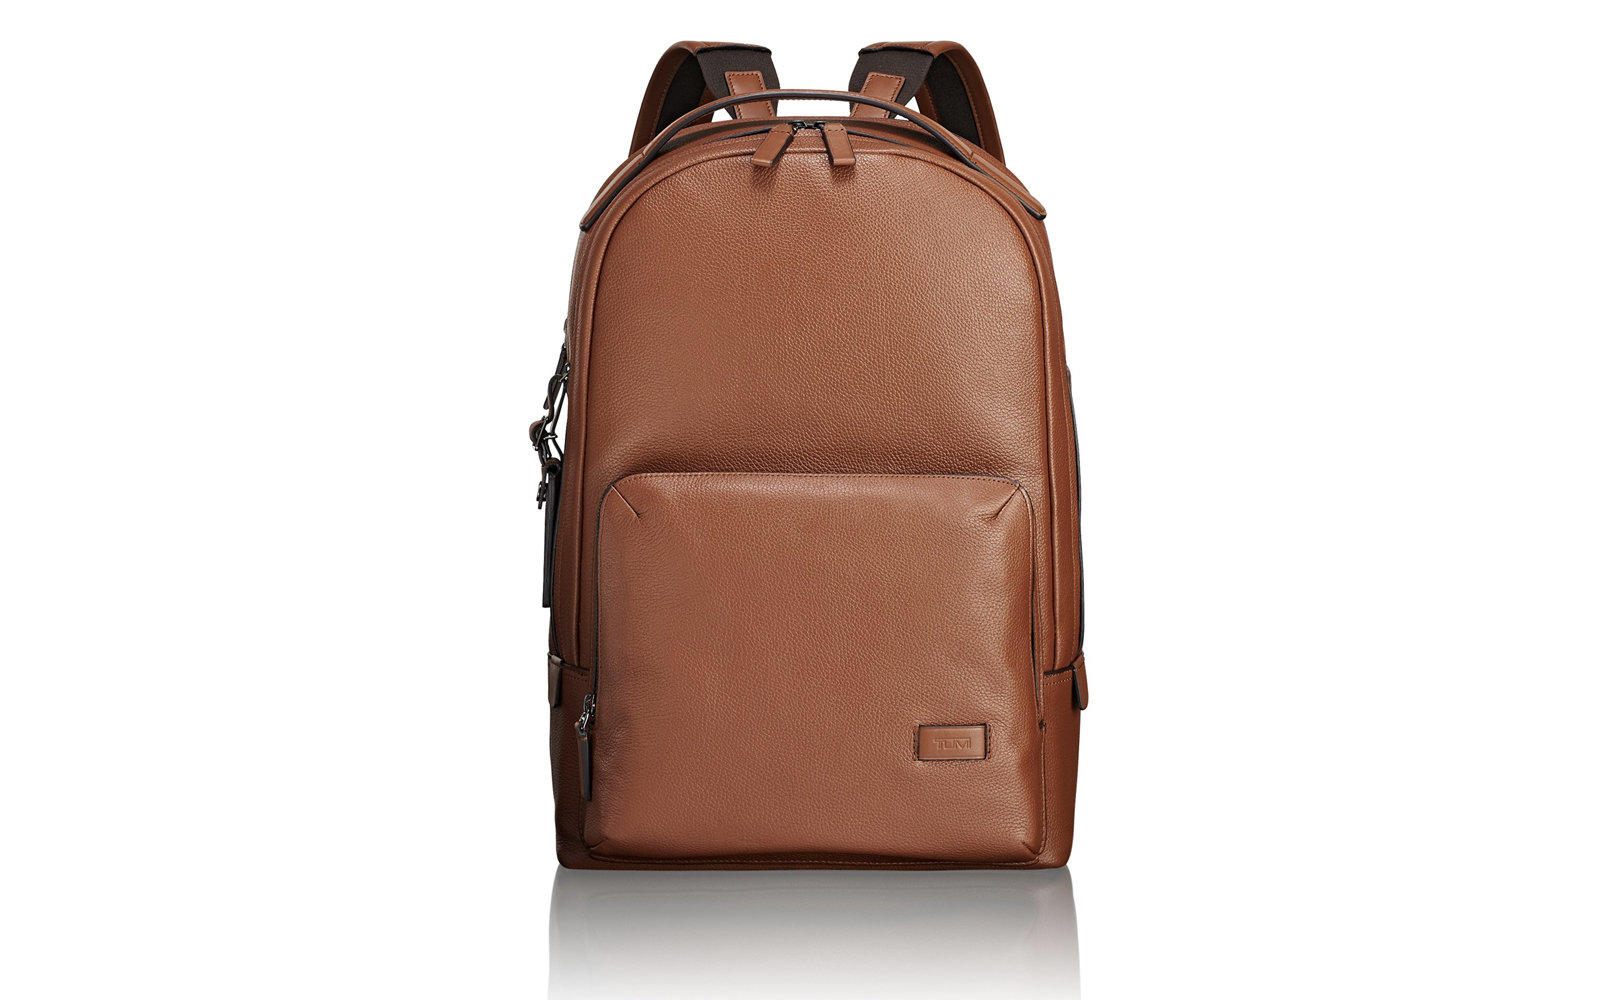 Tumi Webster Leather Backpack